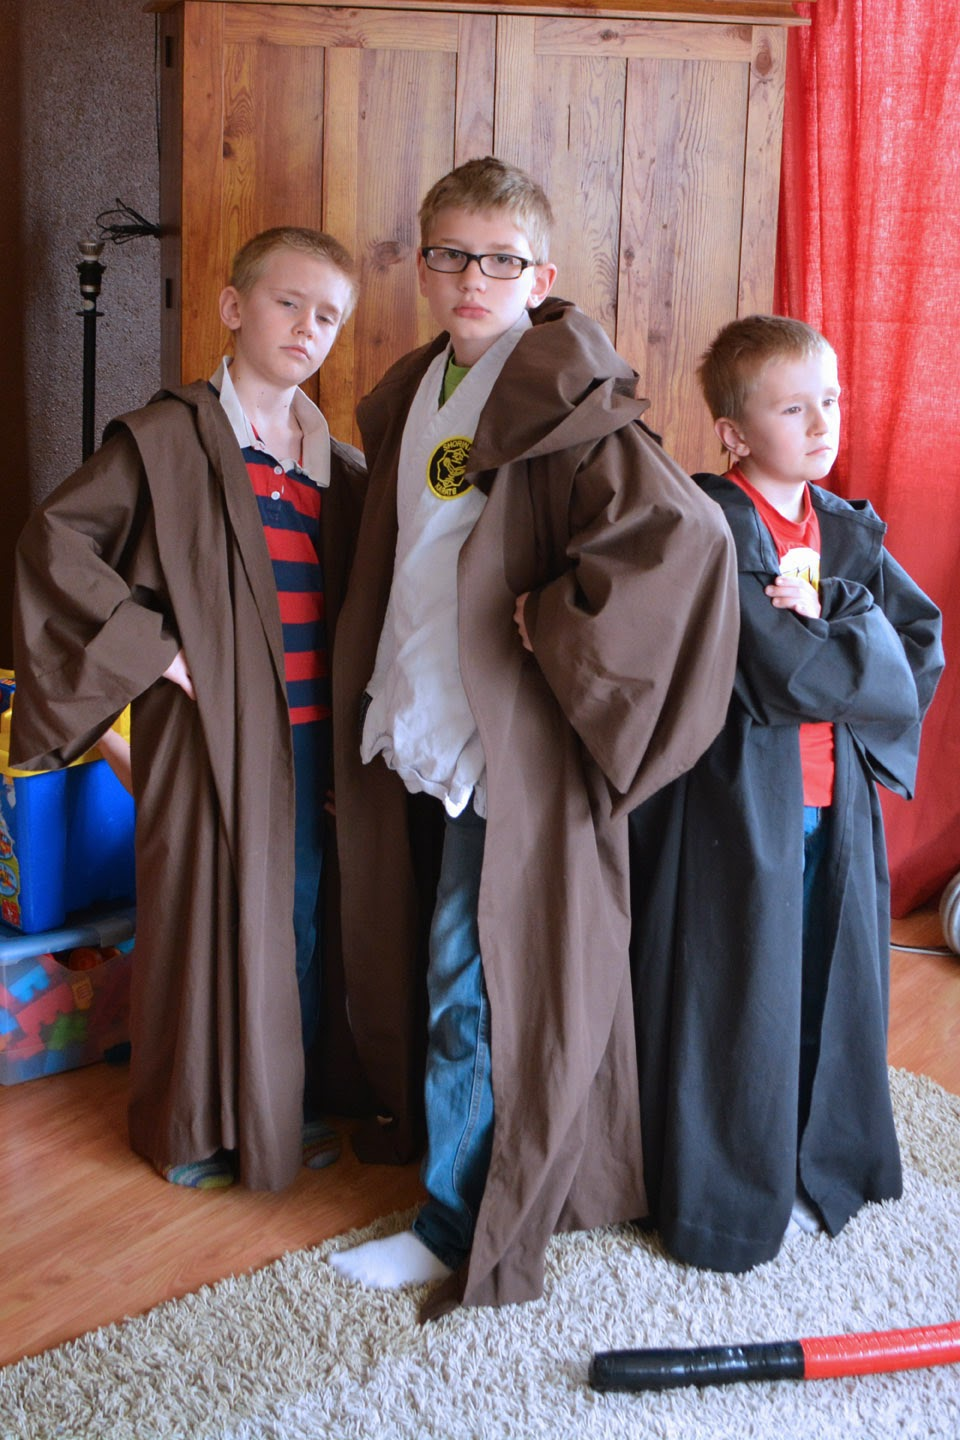 Star Wars Jedi and Sith robes on boys